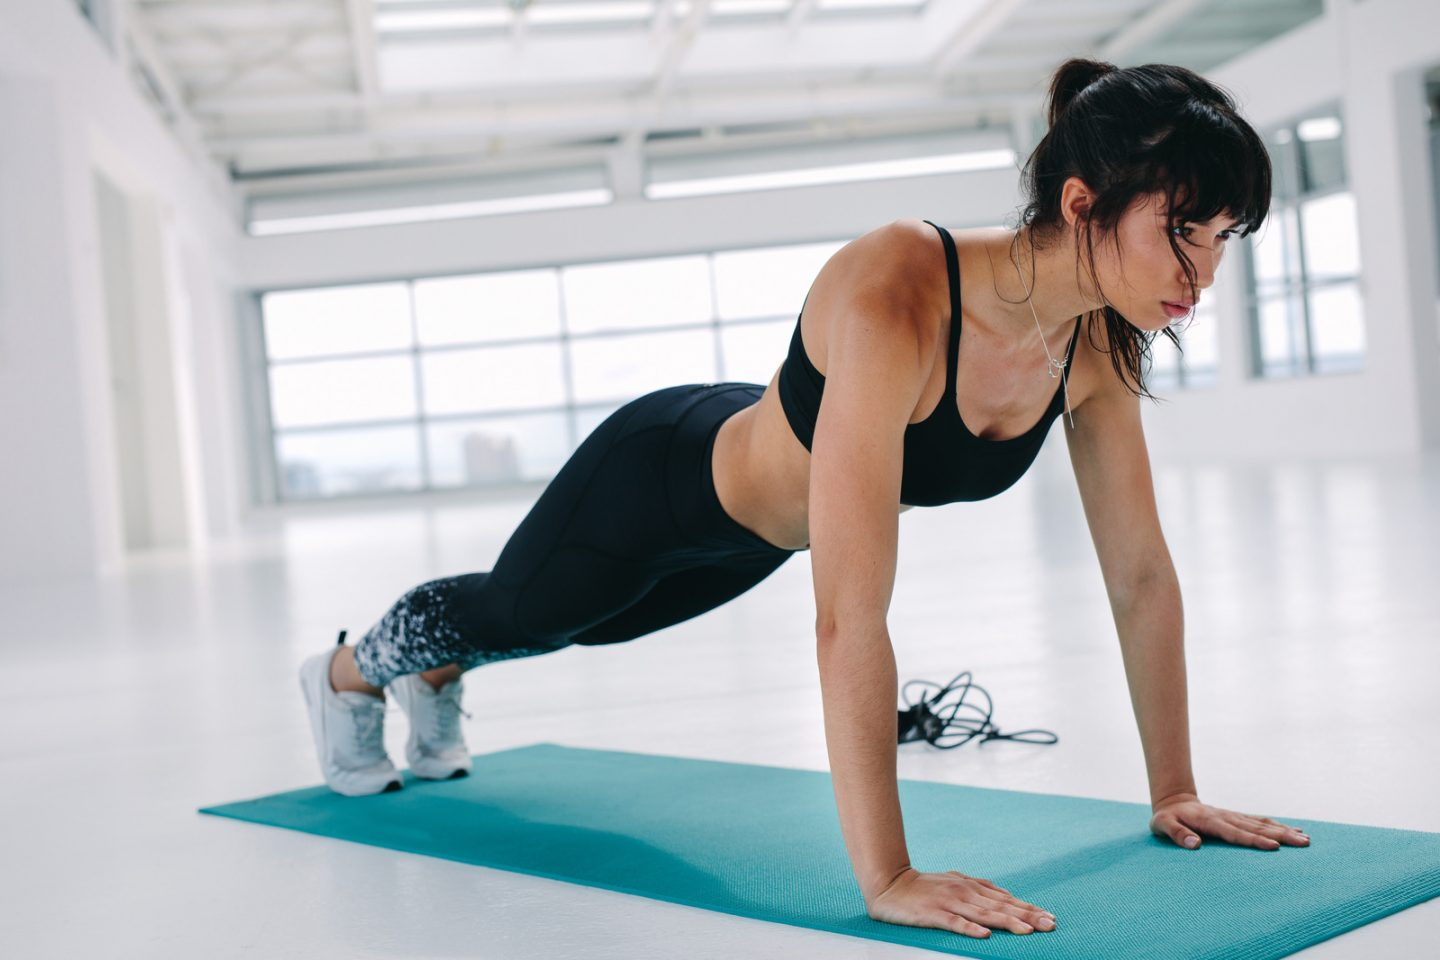 Fit young woman doing push ups on exercise mat in gym. Healthy and strong young female working out on yoga mat in fitness studio.